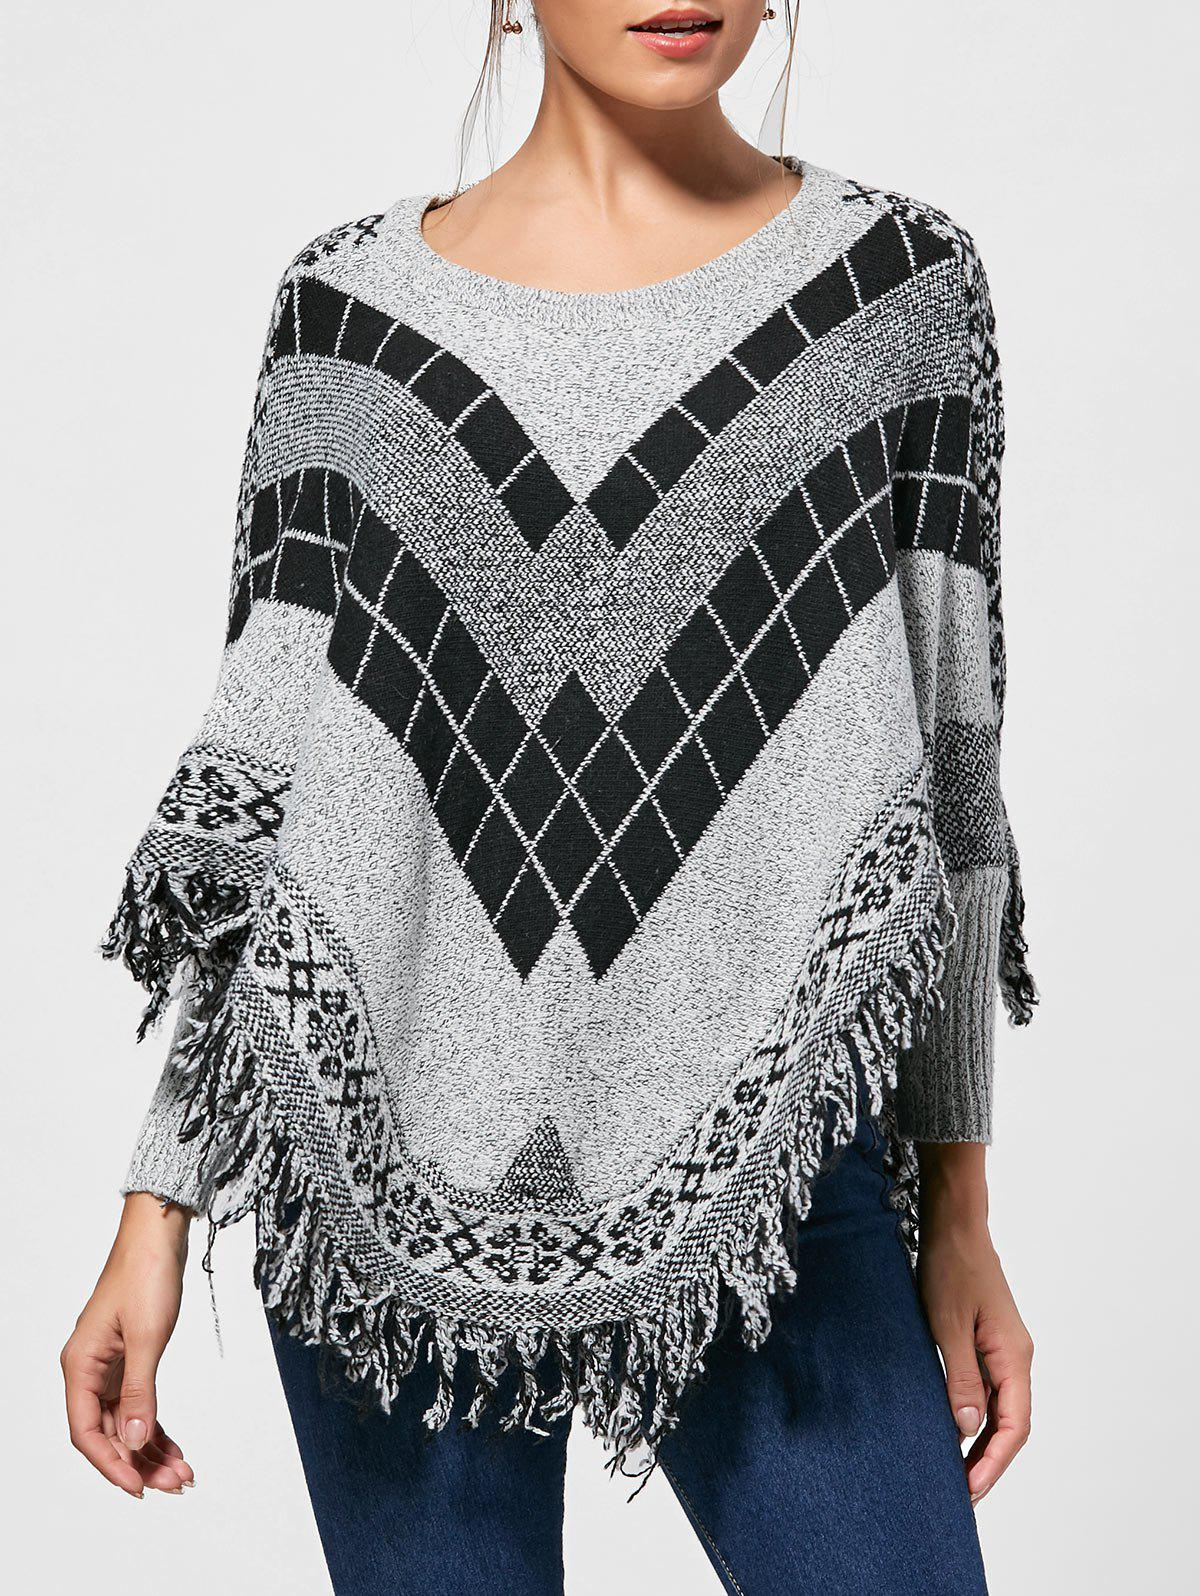 Asymmetric Batwing Graphic Poncho Fringed Sweater 223450001